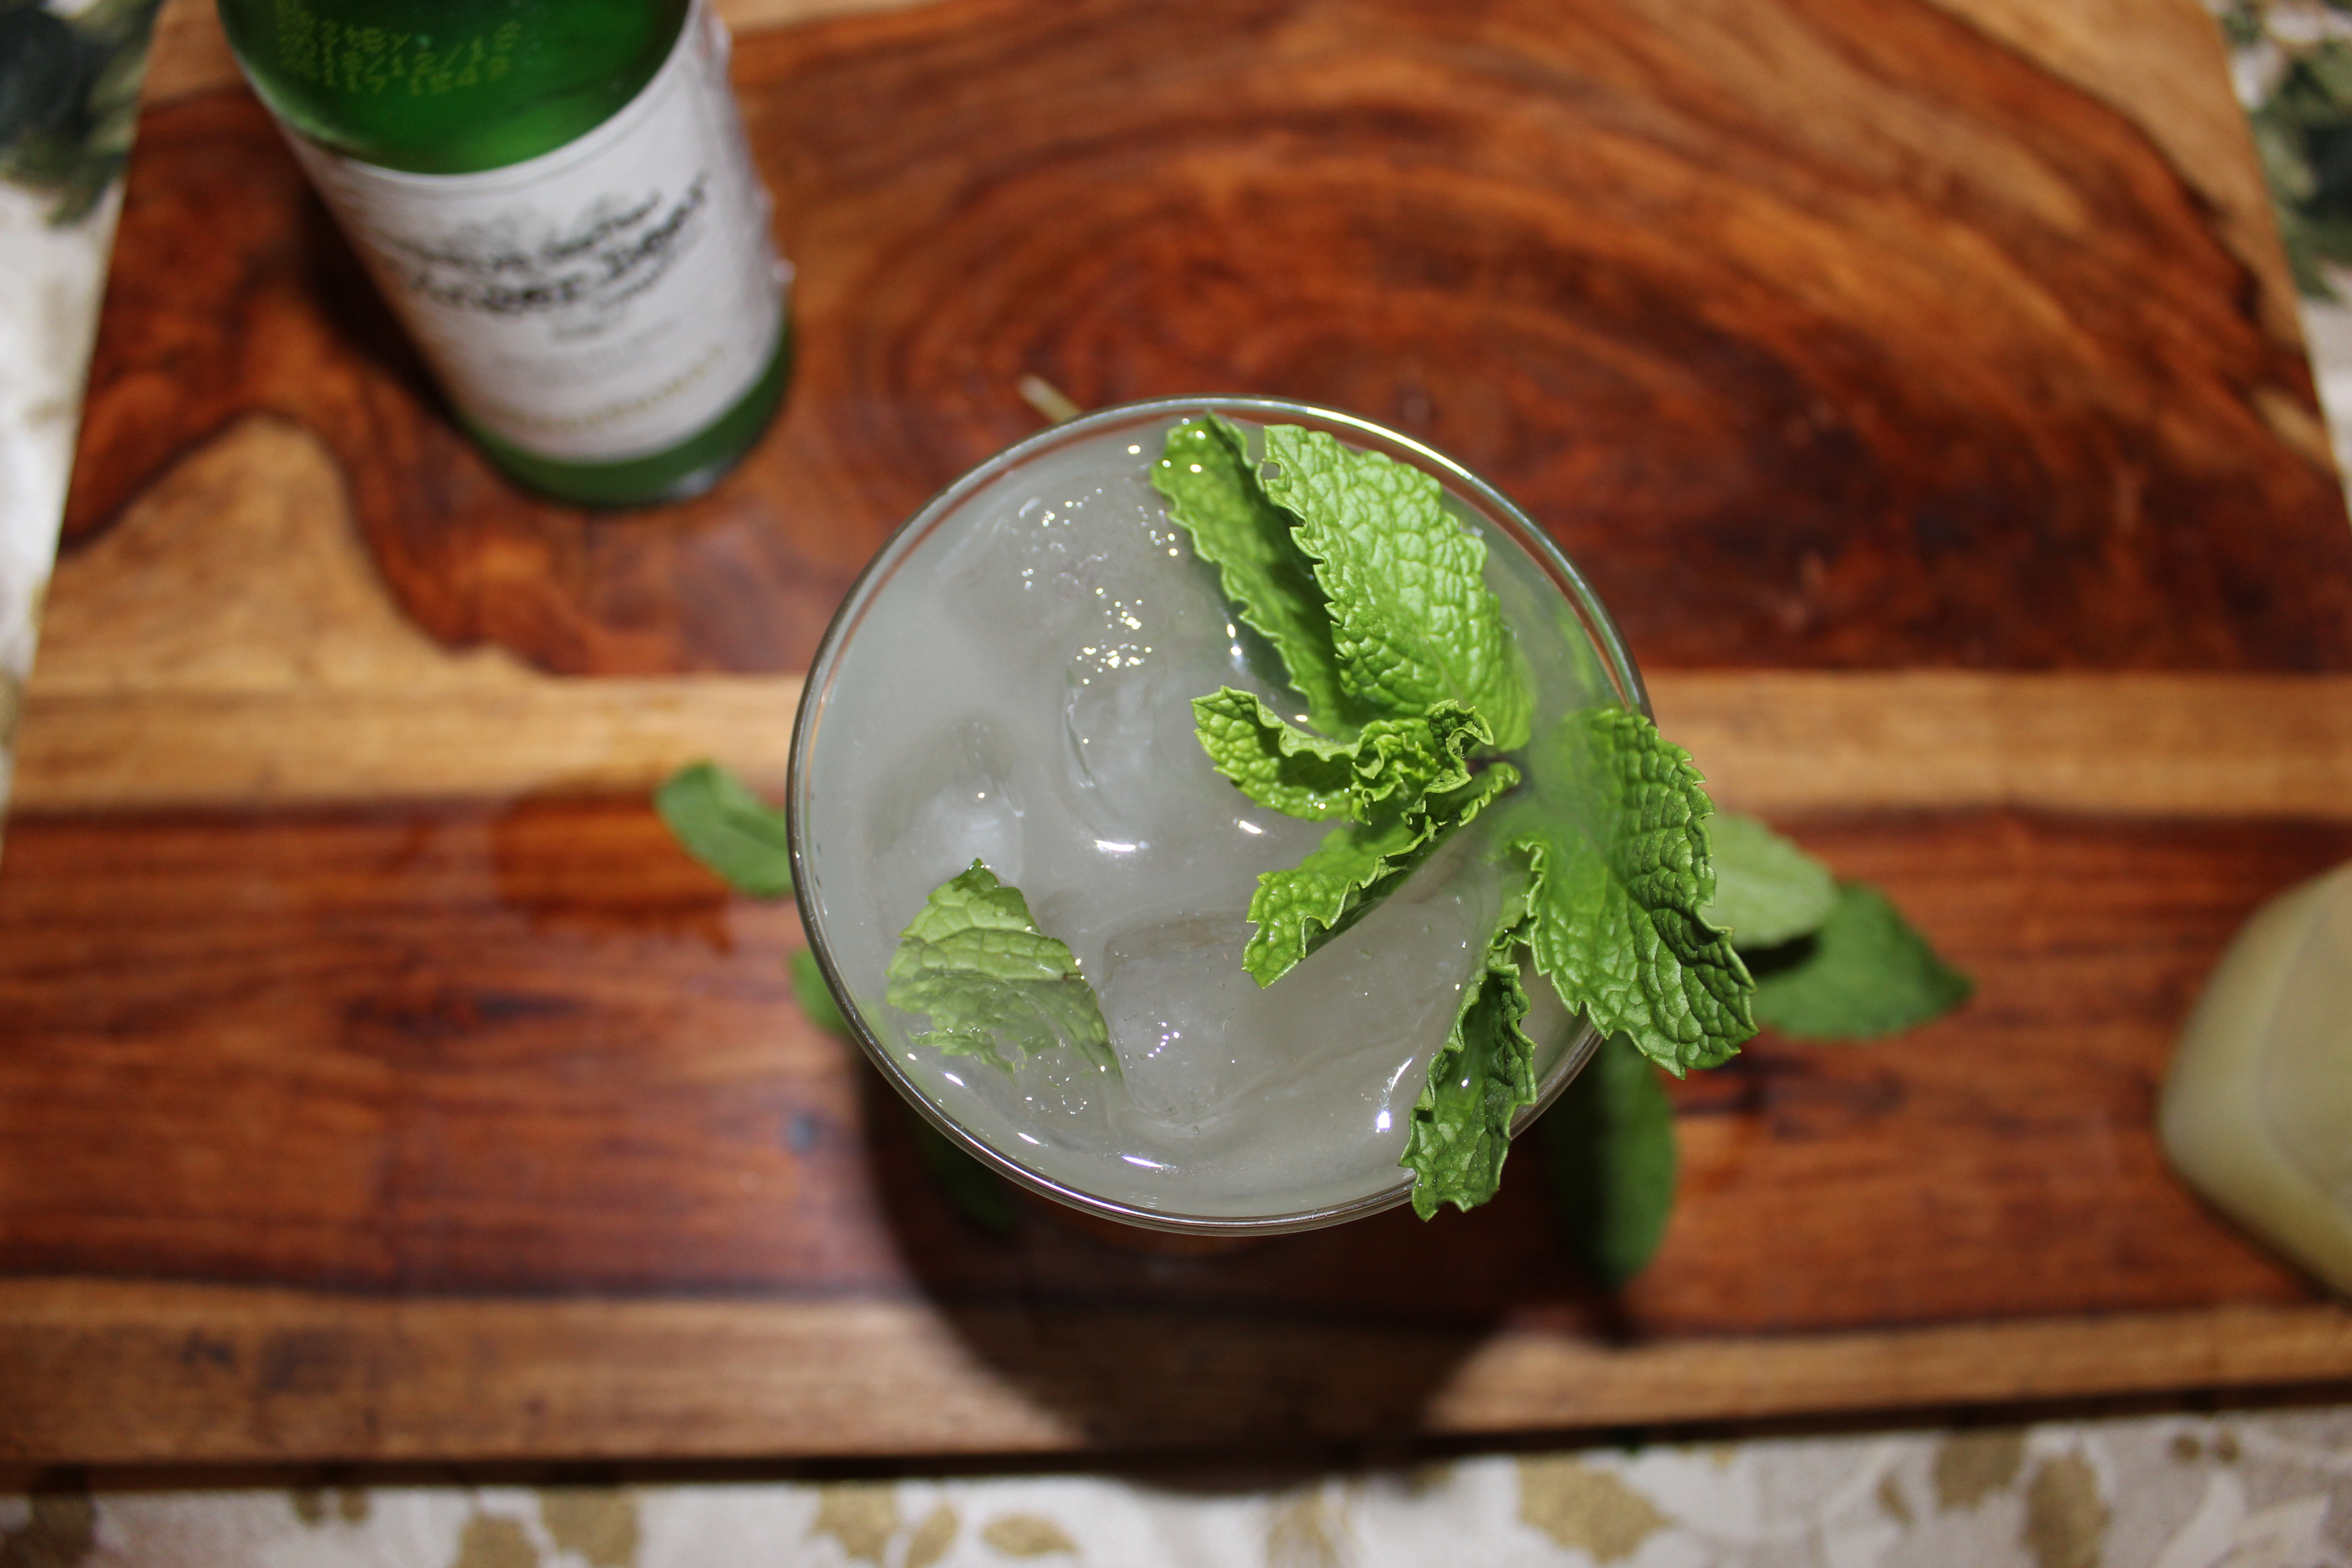 The Mexican Moscow Mule